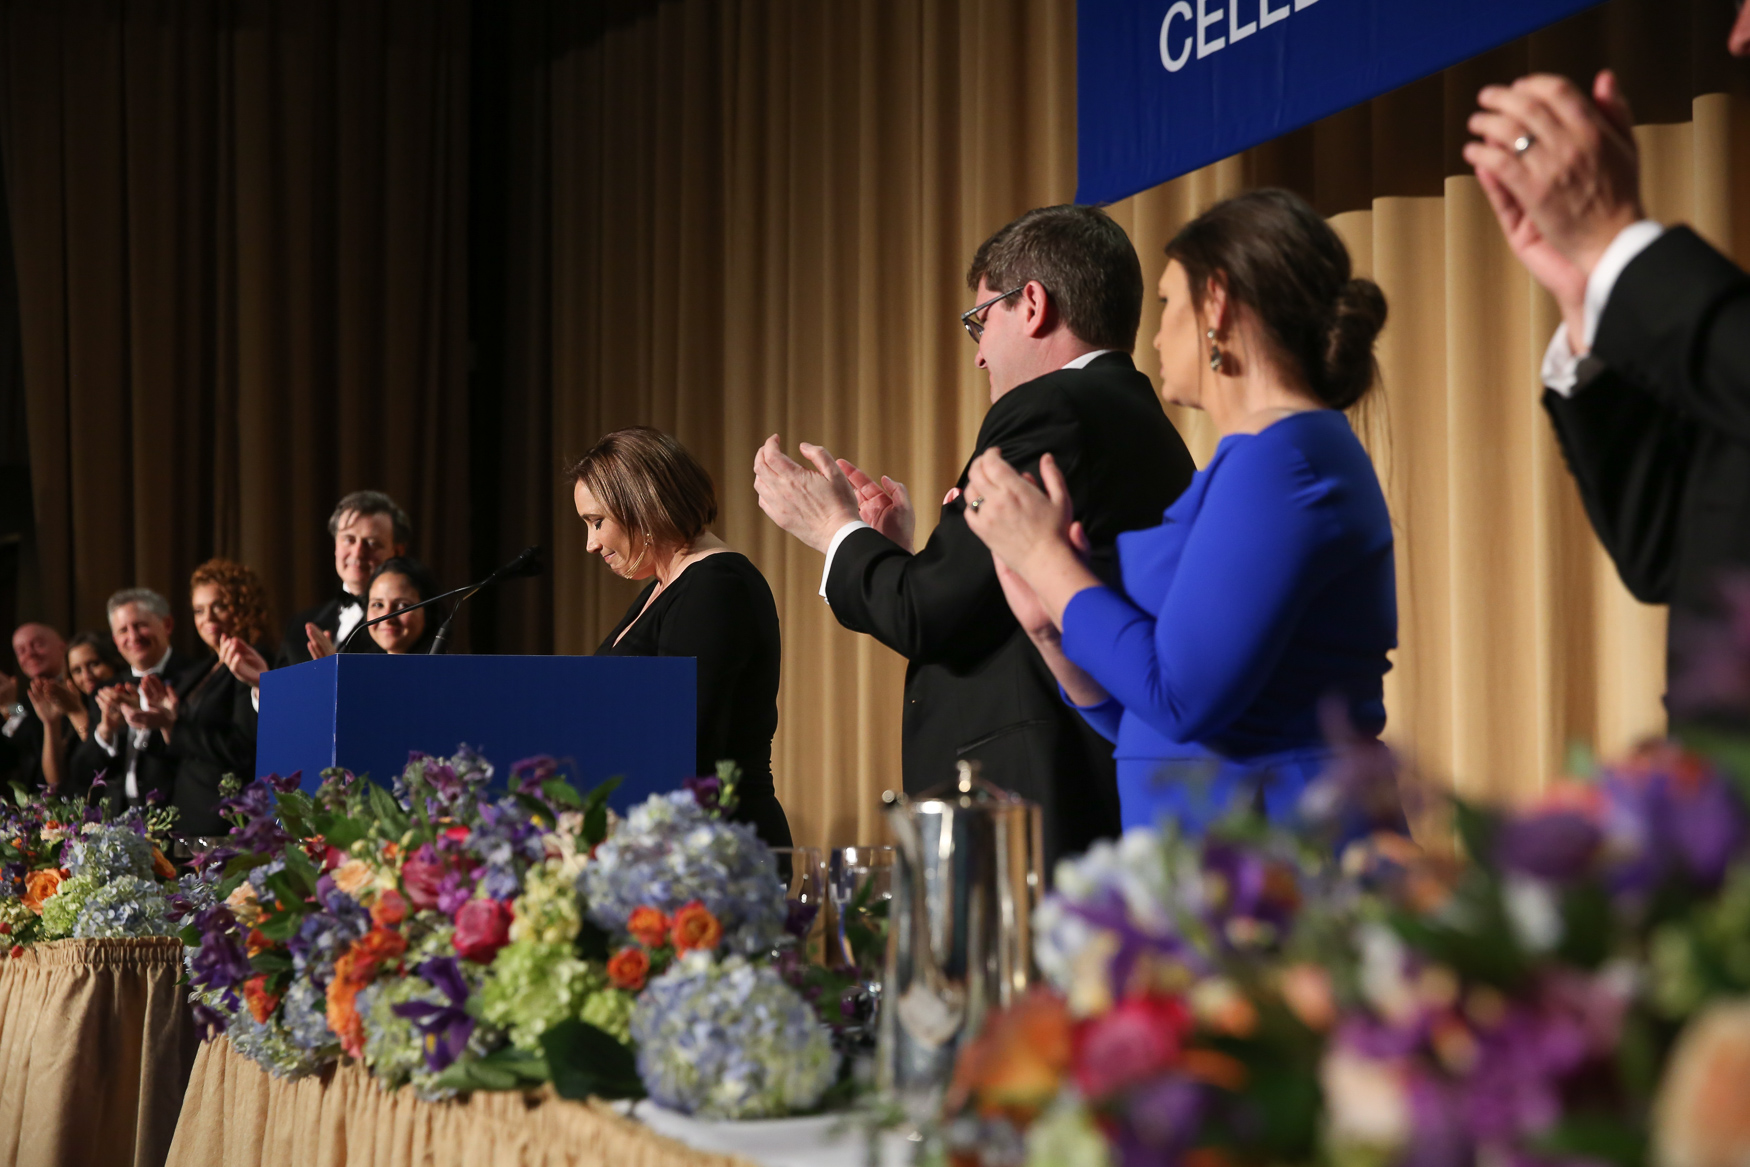 Margaret Talev, president of the White House Correspondents' Association, is applauded by her colleagues. (Amanda Andrade-Rhoades/DCRefined)